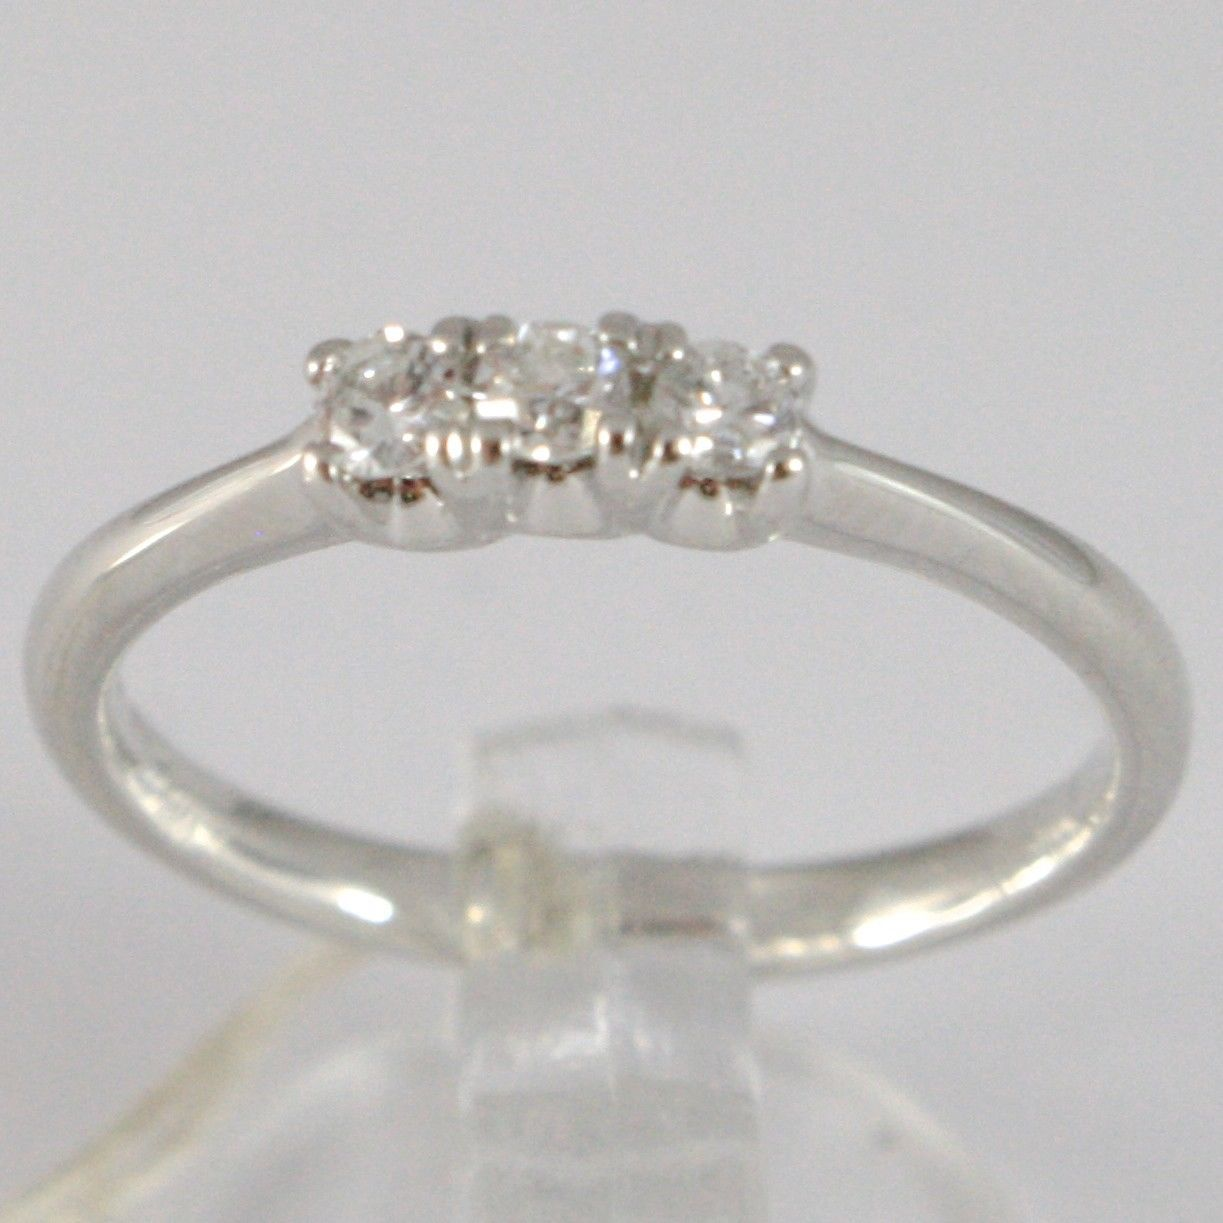 BAGUE EN OR BLANC 750 18K, TRILOGY 3 DIAMANTS CARAT EN TOUT 0.16, TIGE ARRONDIS